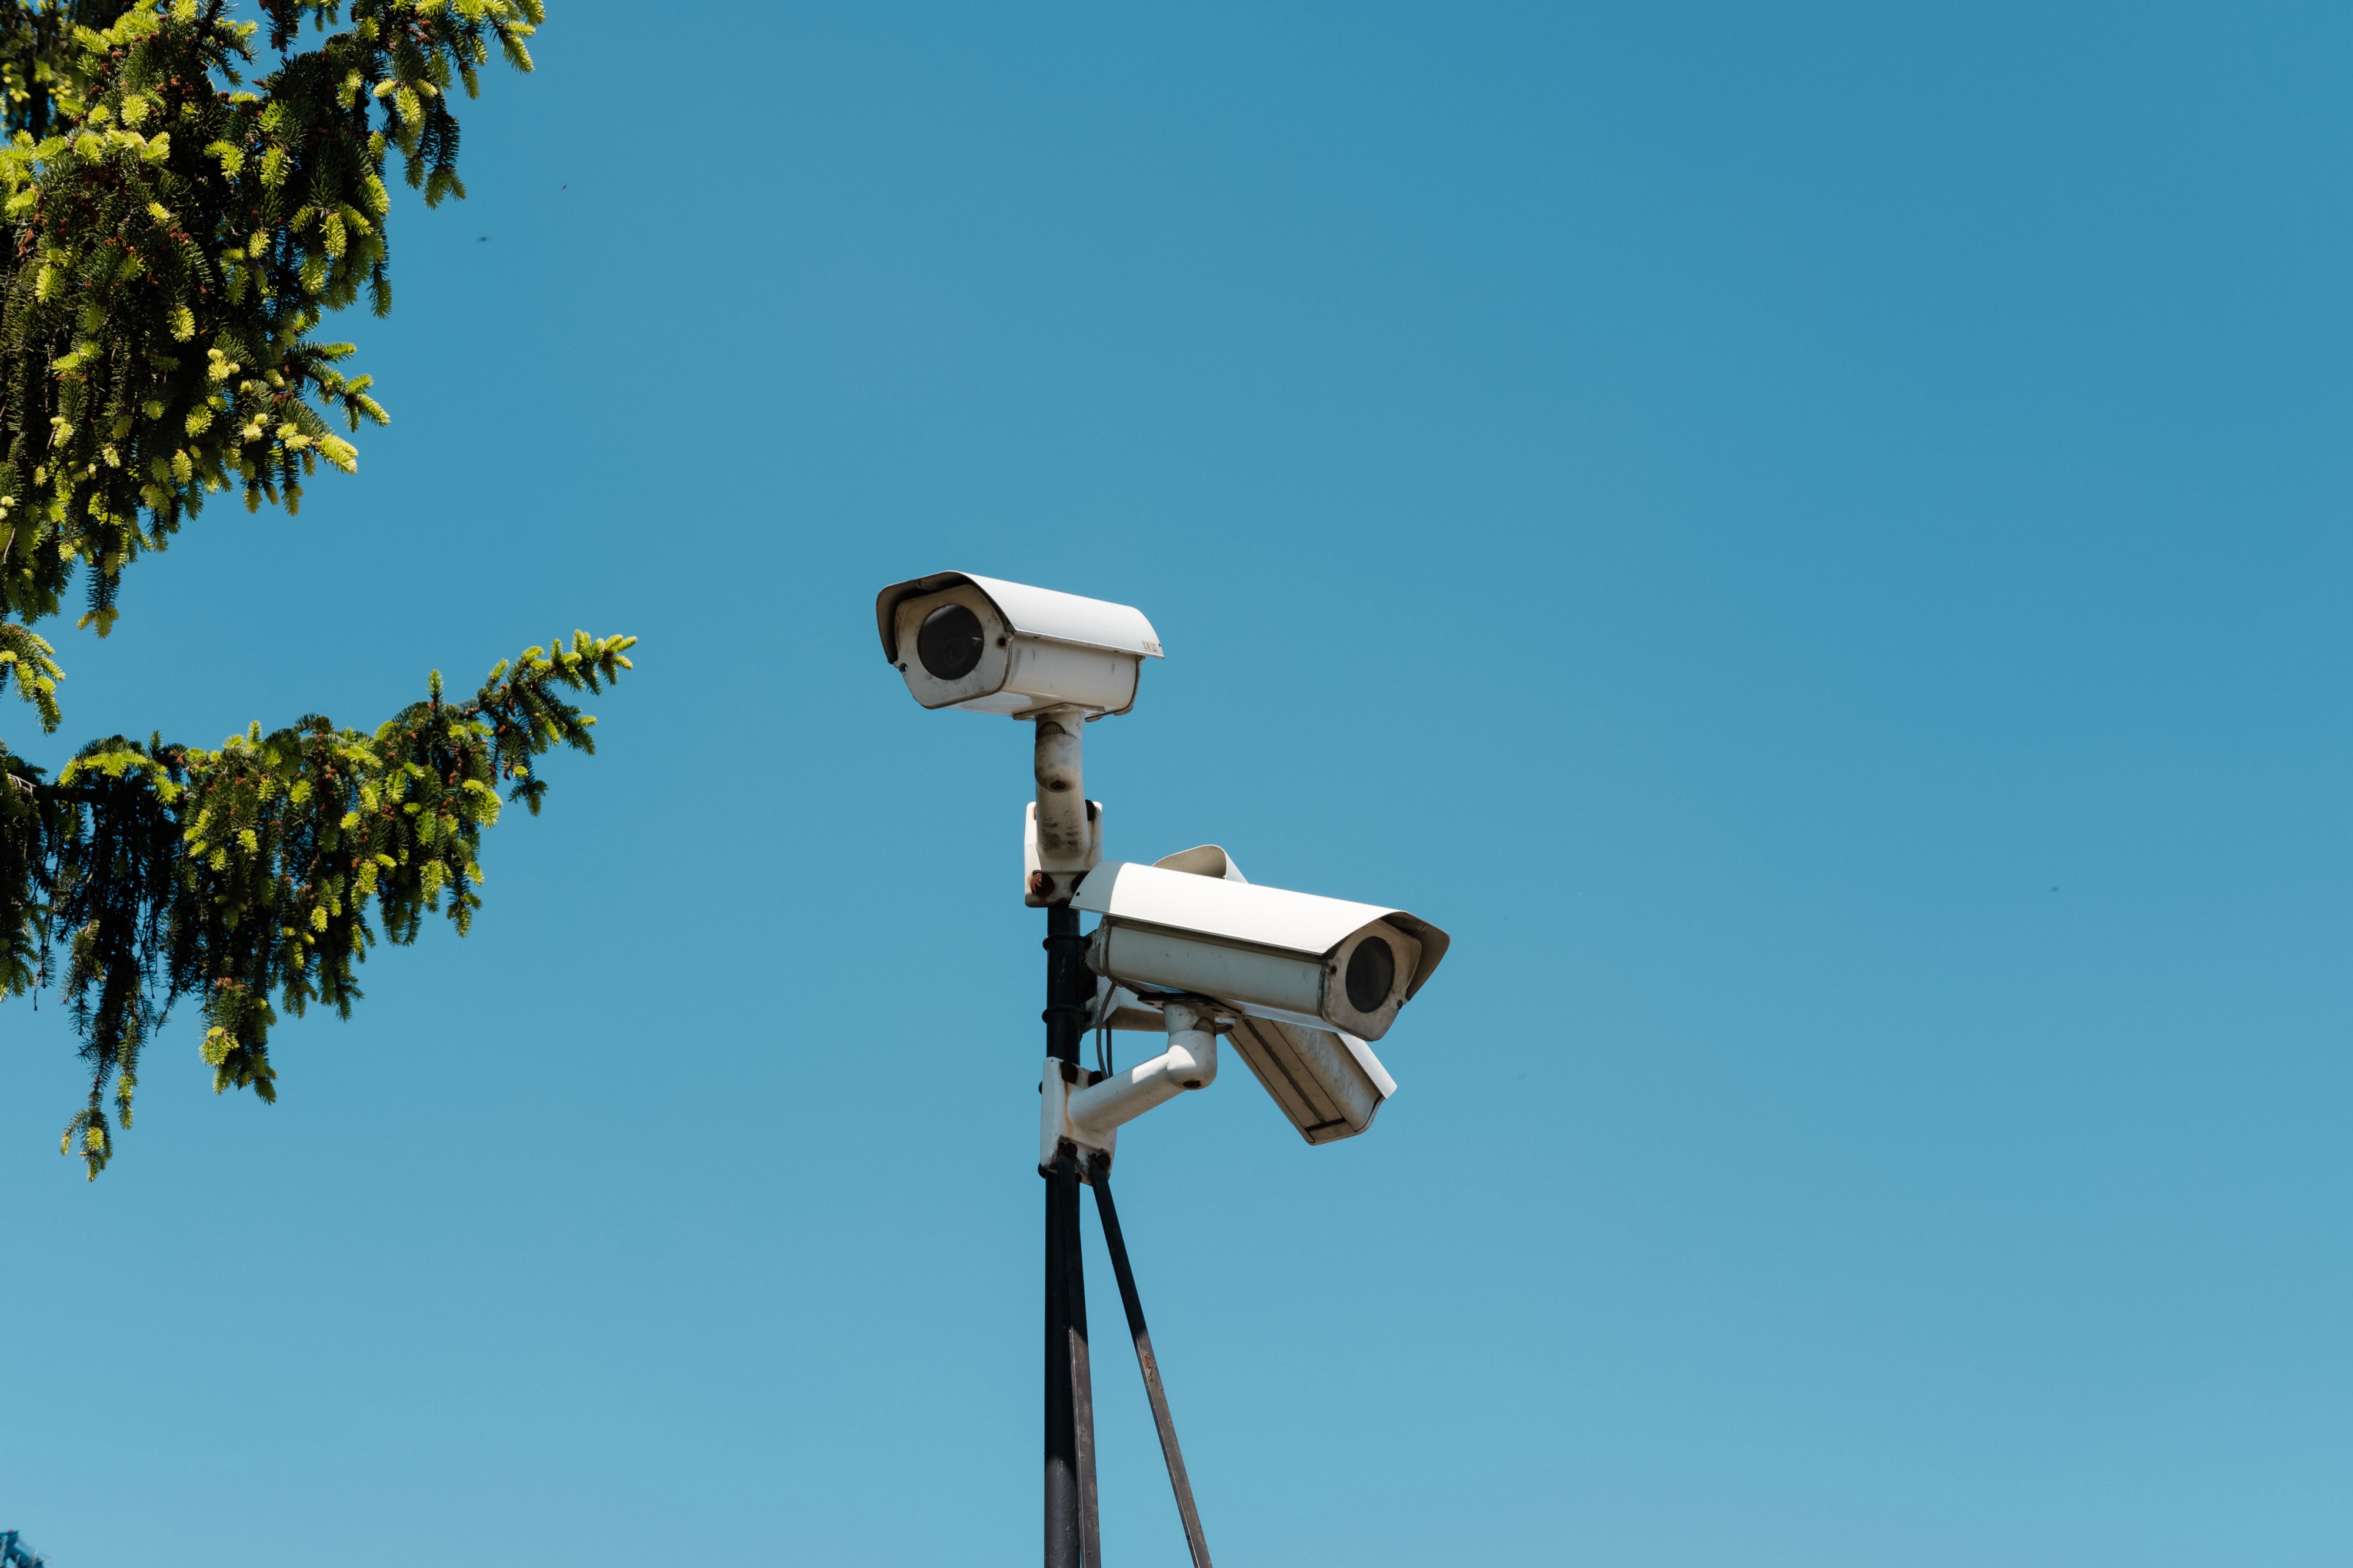 Two surveillance cameras collect video footage.